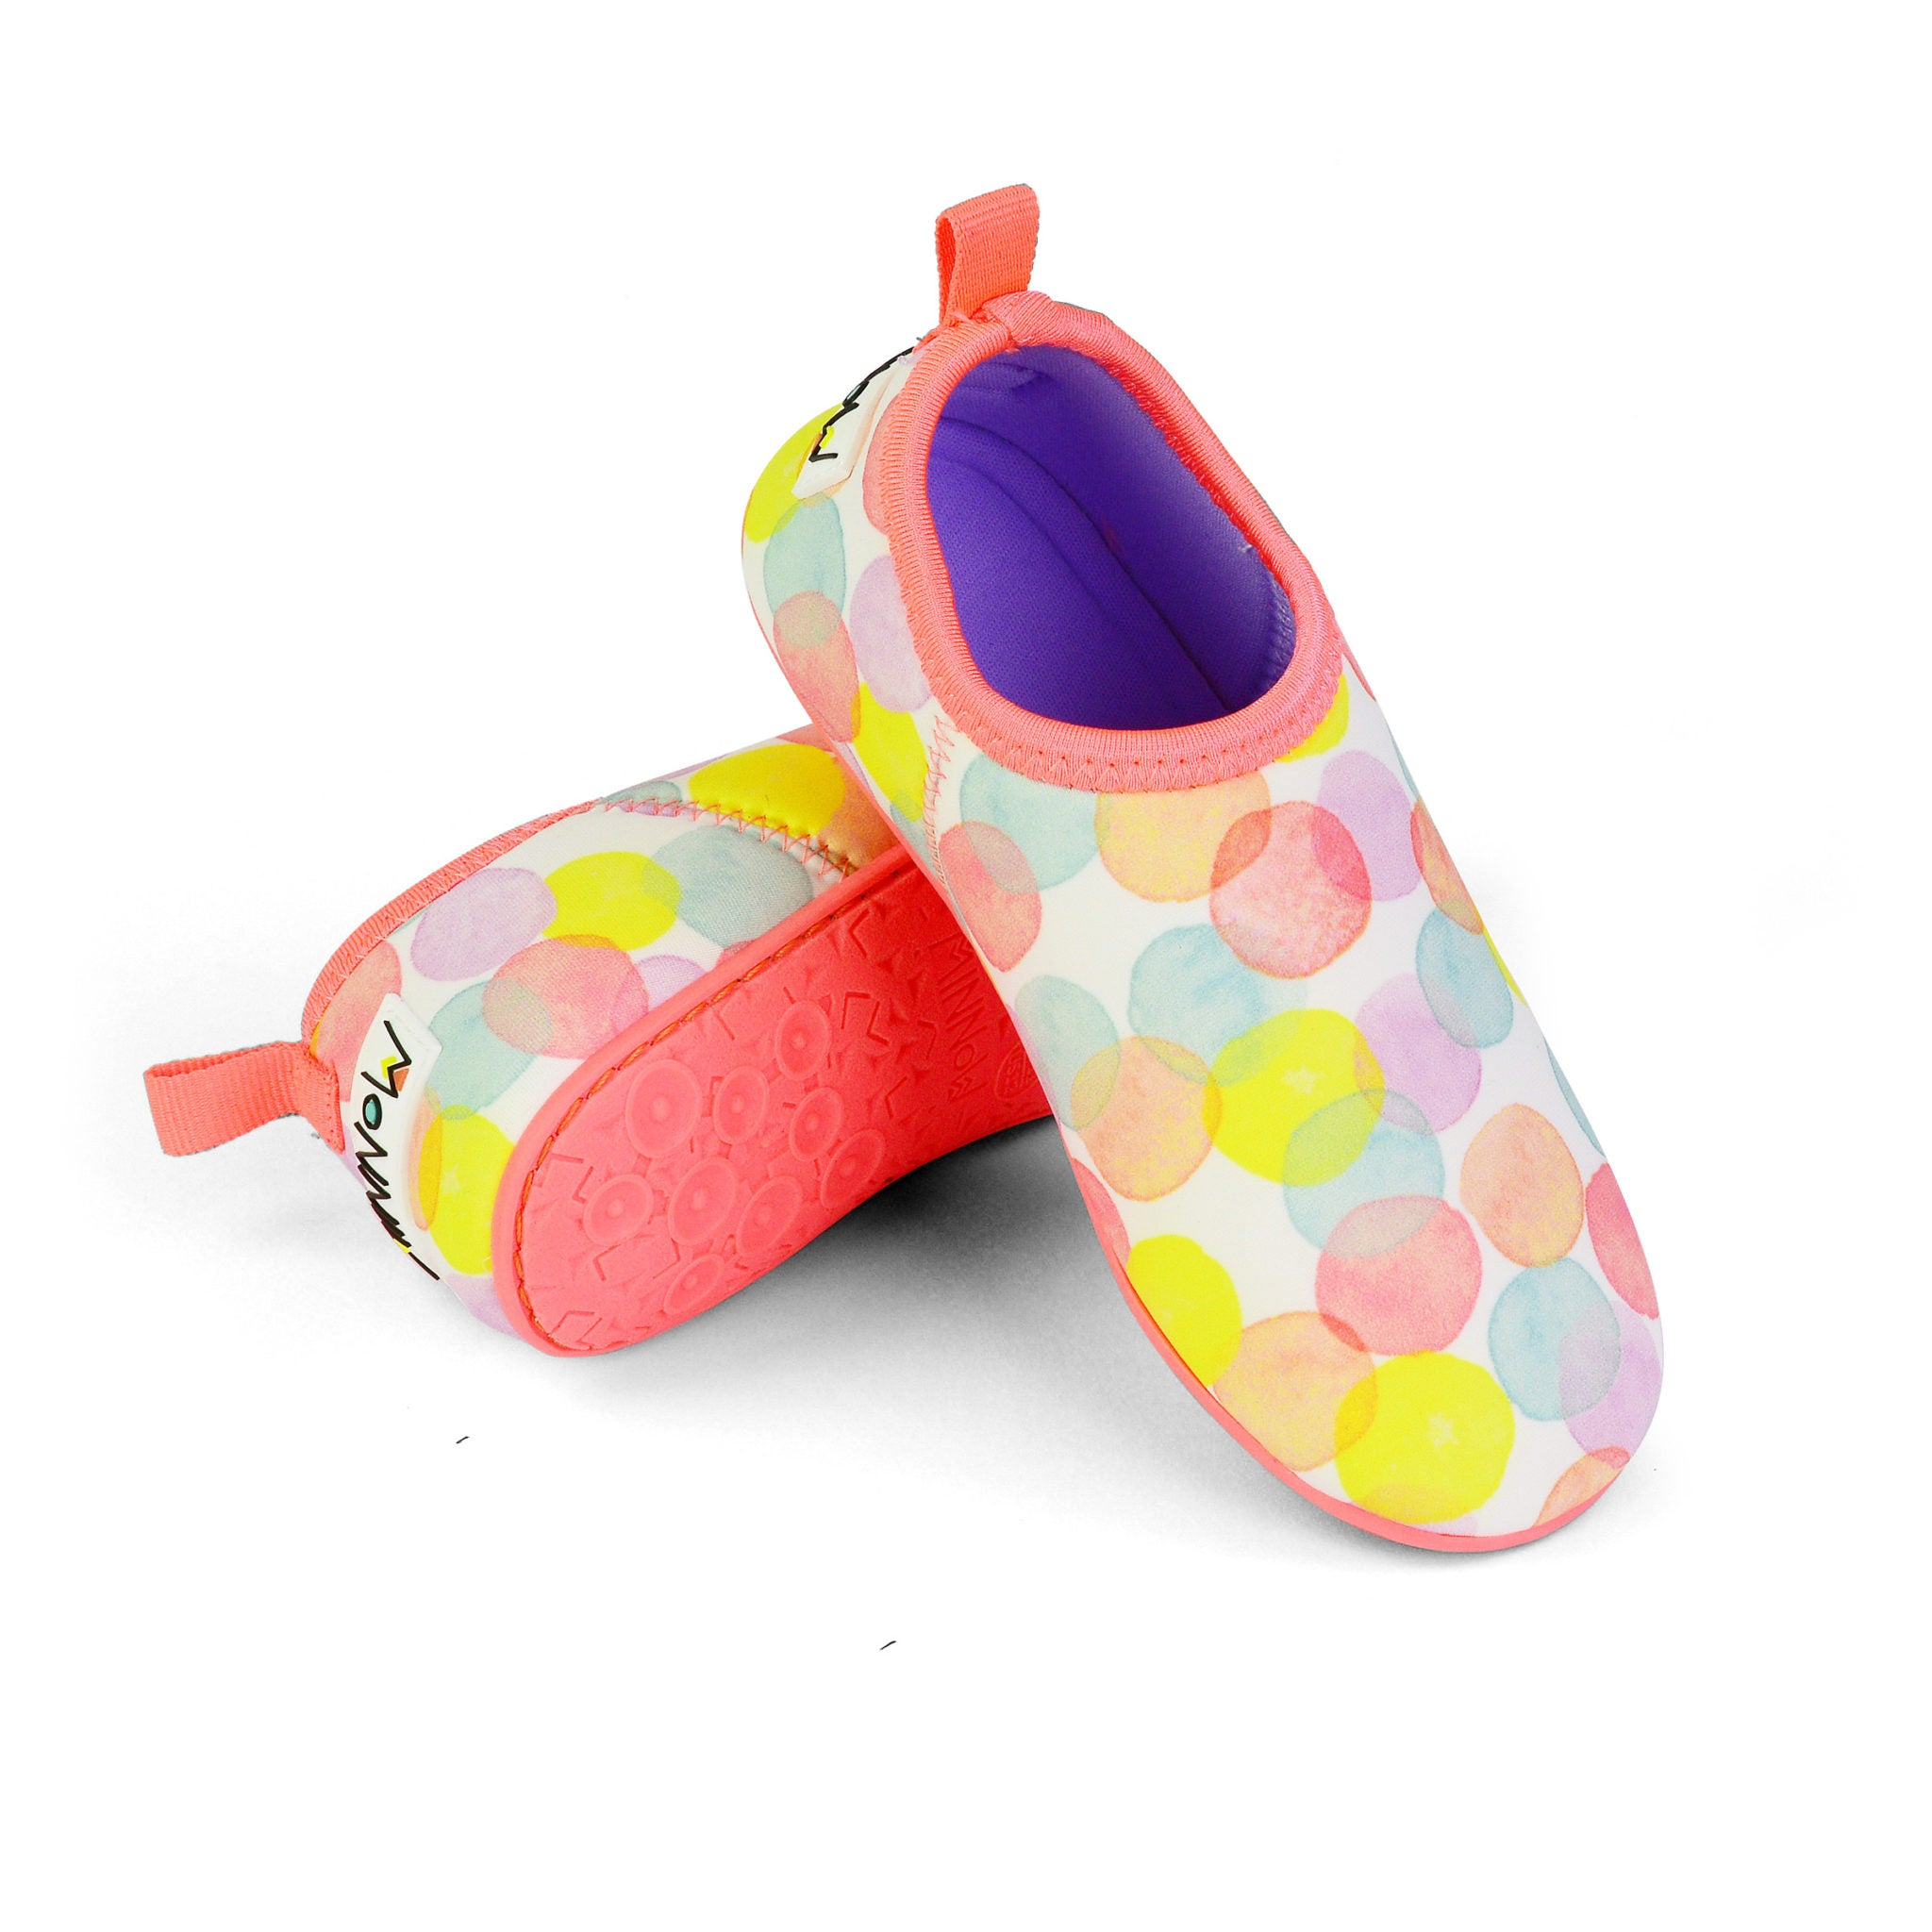 Dotty Junior Swim Shoe - Chachi's Bay - kids rashies - kids swimwear - kids swim shoes - round towels - beach towels